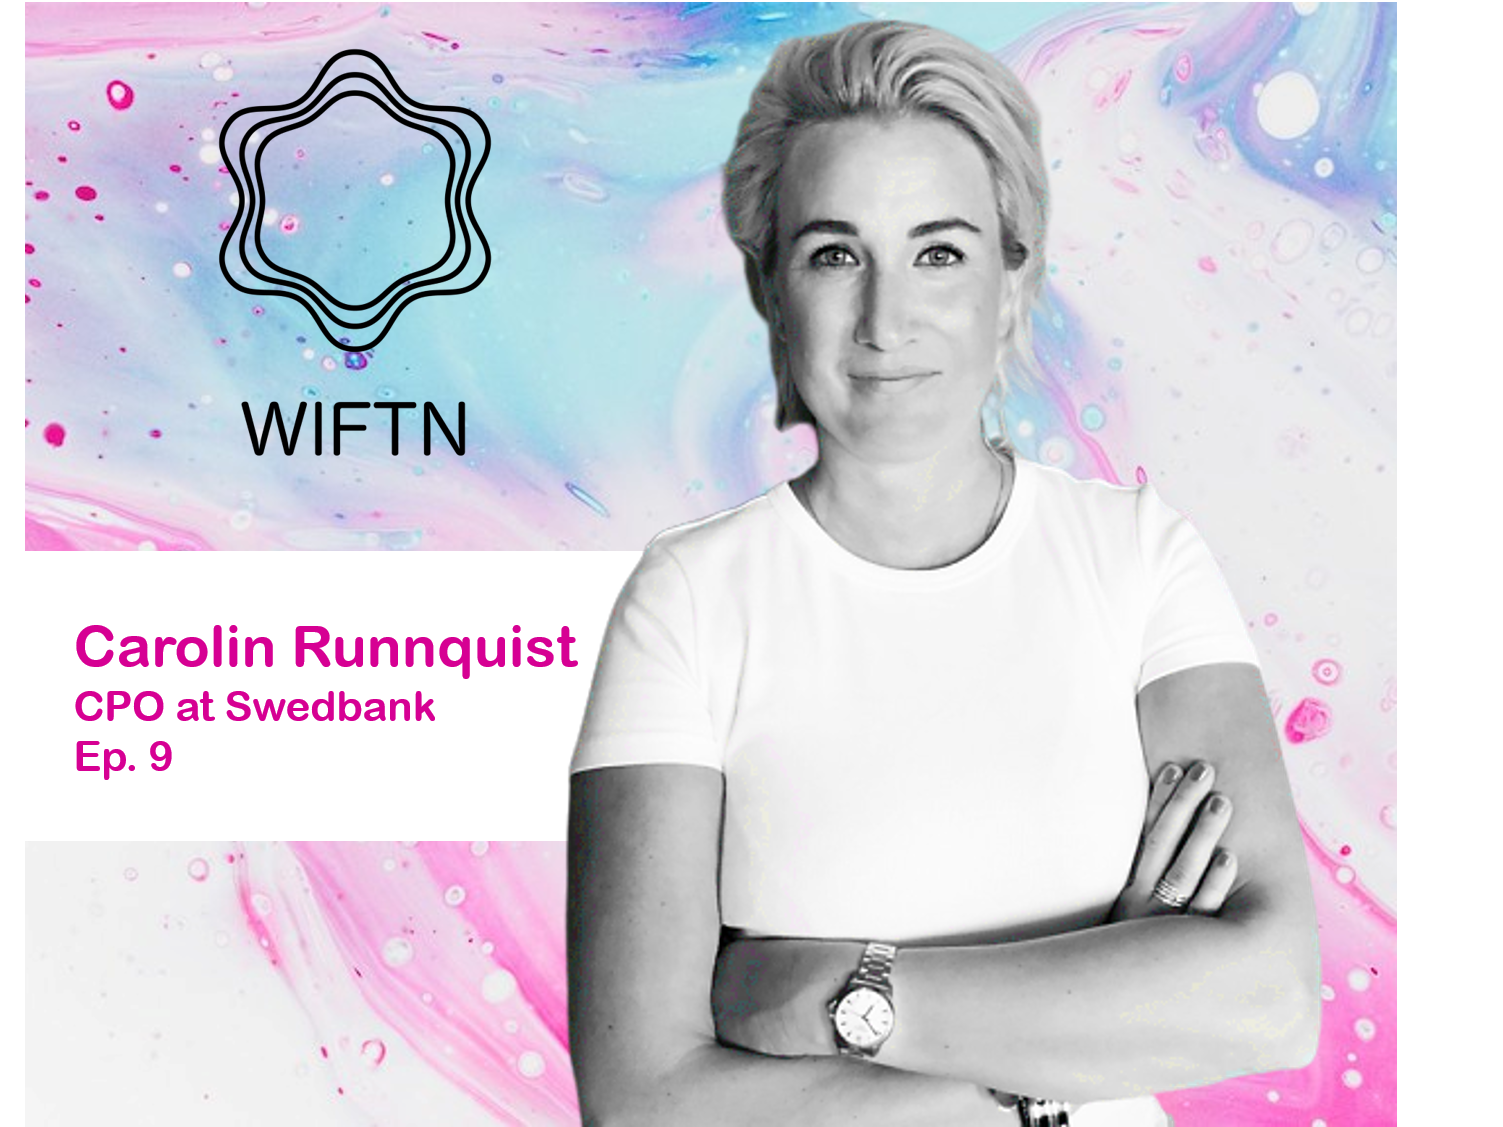 Ep. 9 Carolin Runnquist - From a bachelor degree in social work to becoming one of Sweden's leading experts in cybersecurity, Carolin Runnquist shares her career journey with us in this exciting podcast episode. She has been named IT Woman of the Year by Tieto (2018) and appointed one of Sweden's 101 Super talents by Veckans Affärer (2018), one of the most known Swedish financial magazine. Besides all of that, she even found time to write a book - called Leadership in Crisis - which will be released yet this year (Liber 2019). She is for sure a true role model, leader and inspiration in the area!Listen to episode 9 - Spotify Listen to episode 9 - Itunes